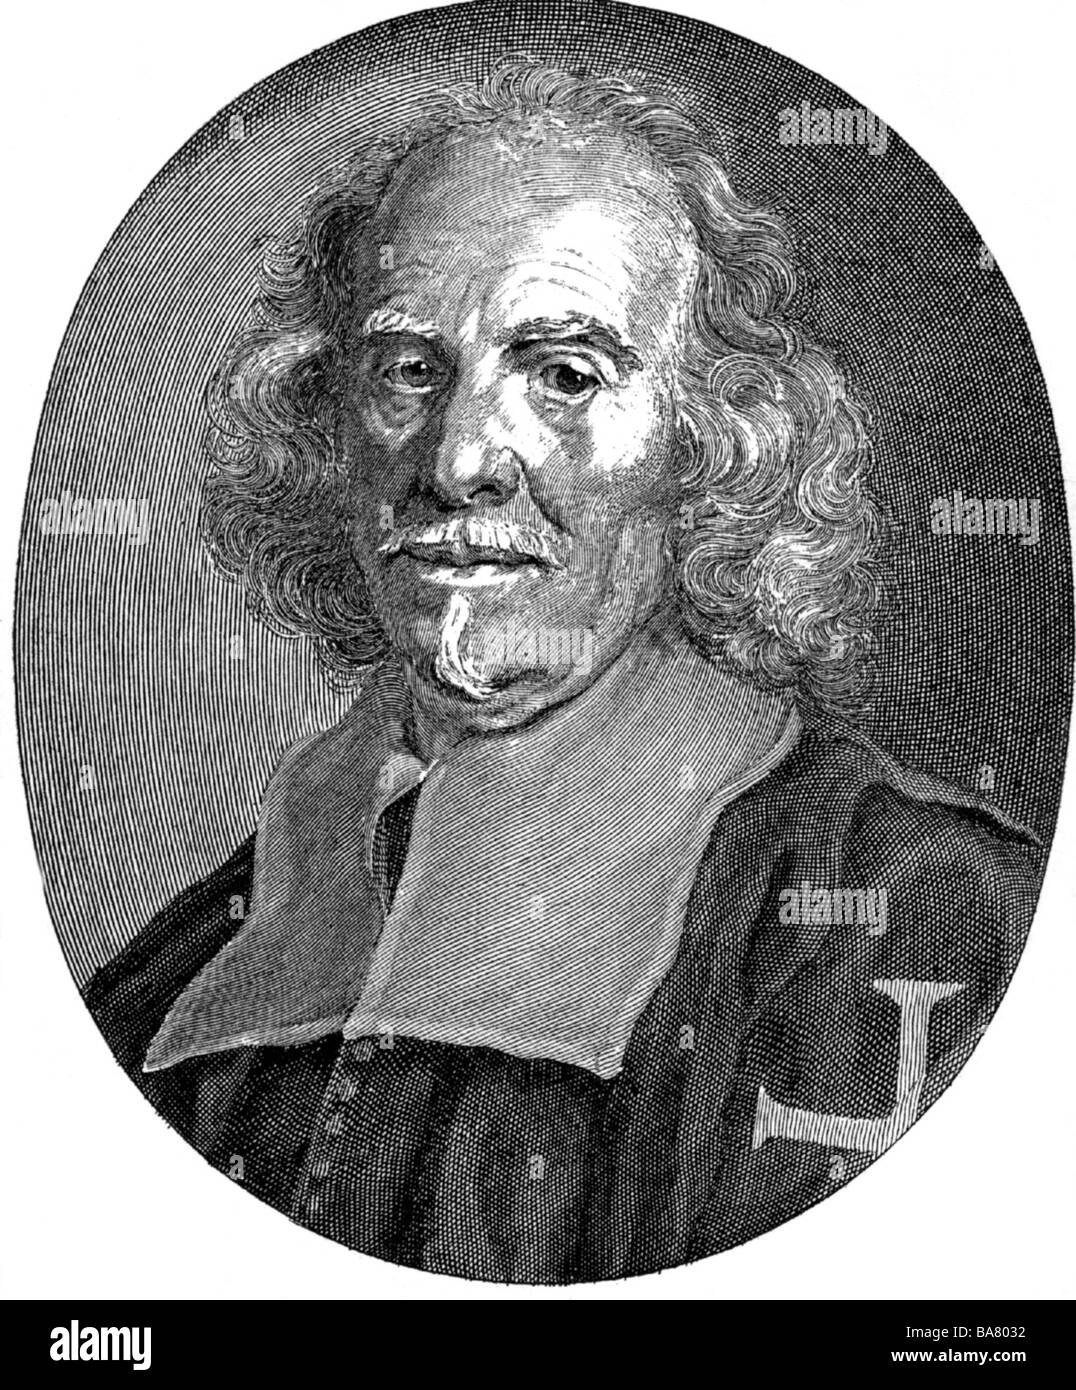 Bernini, Gian Lorenzo, 7.12.1598 - 28.11.1680, Italian sculptor and architect, portrait, copper engraving by A. - Stock Image